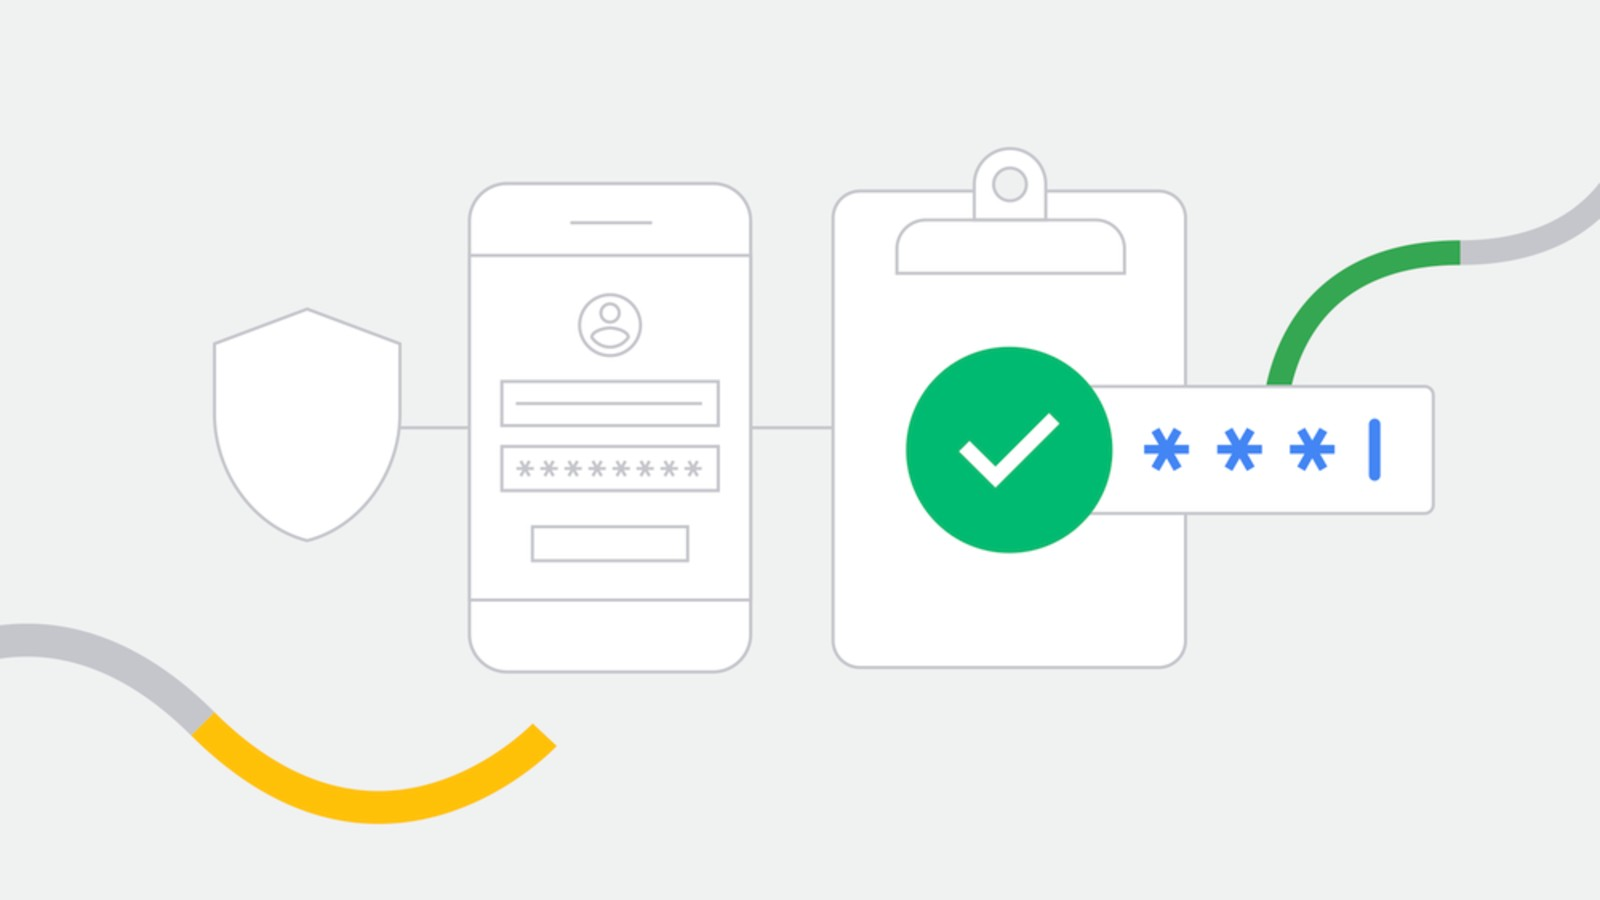 Google wants to help automatically fix your compromised passwords with Duplex